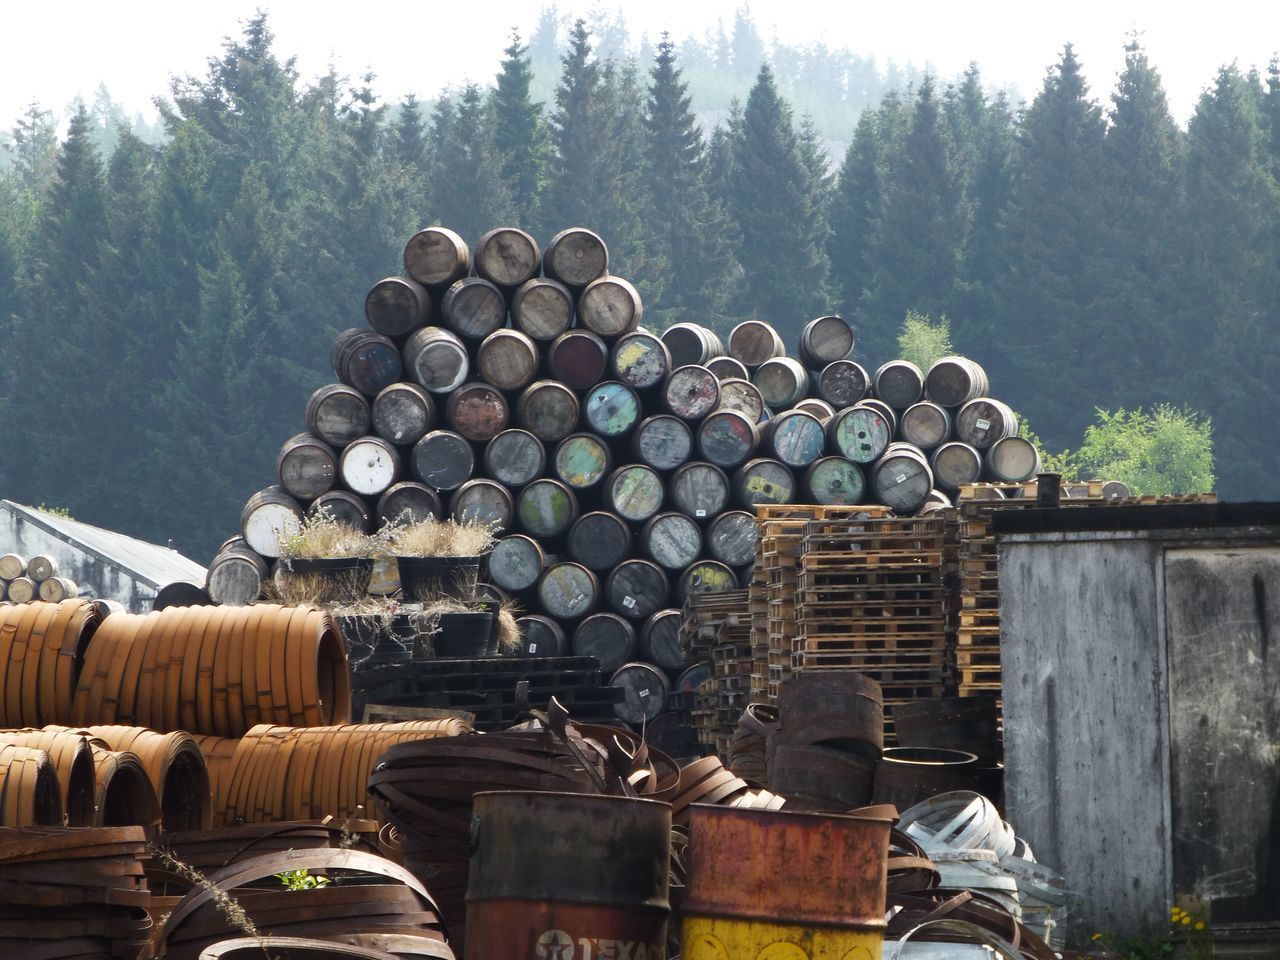 Whisky Barel Large Group Of Objects Day Tree Metal Stack No People Outdoors Mountain Nature